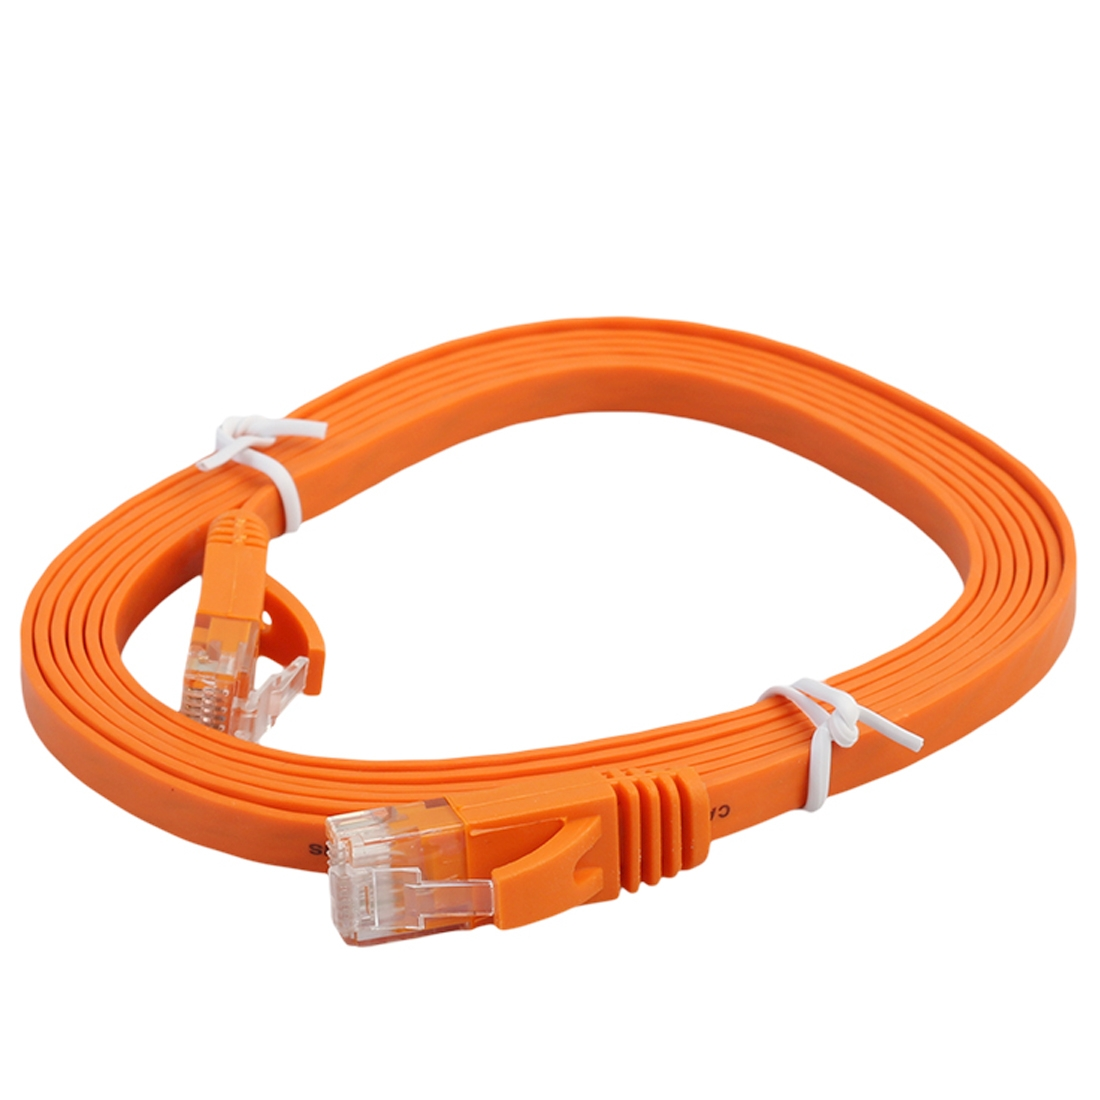 Electronic Tools 3m CAT6 Ultra-Thin Flat Ethernet Network LAN Cable Patch Lead RJ45 Color : Orange Black